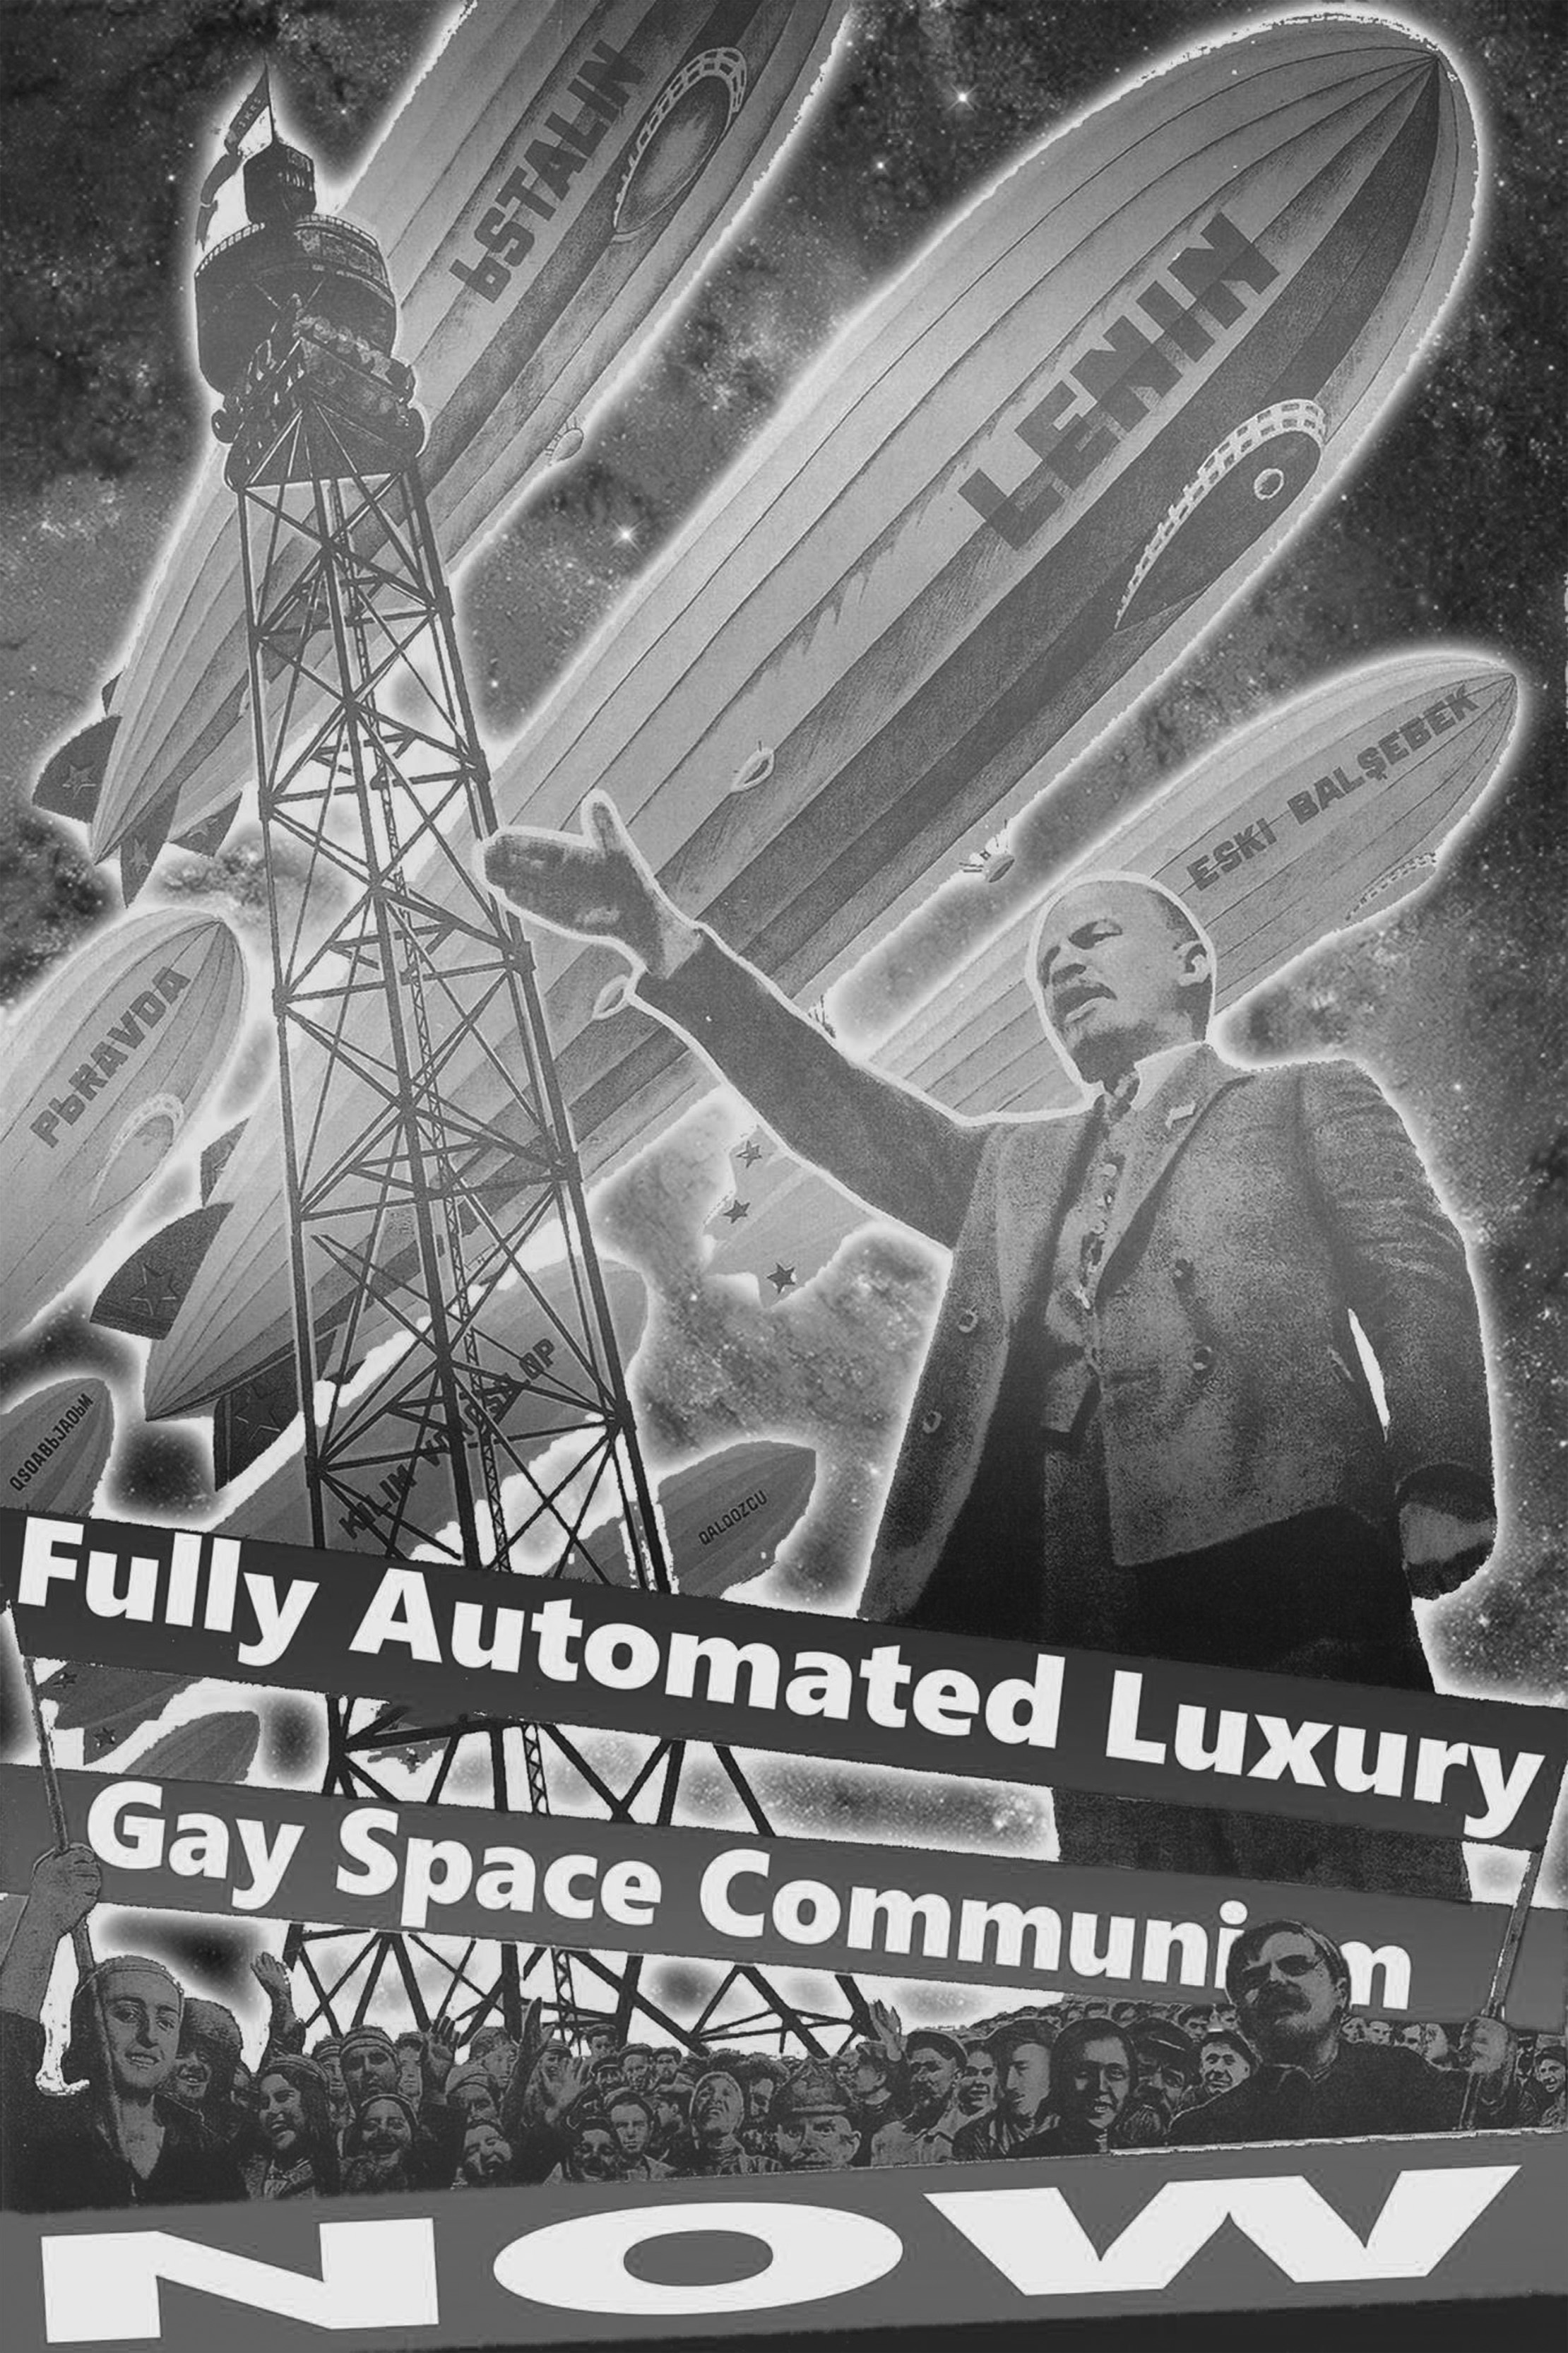 Fully Automated Luxury Gay Space Communism meme